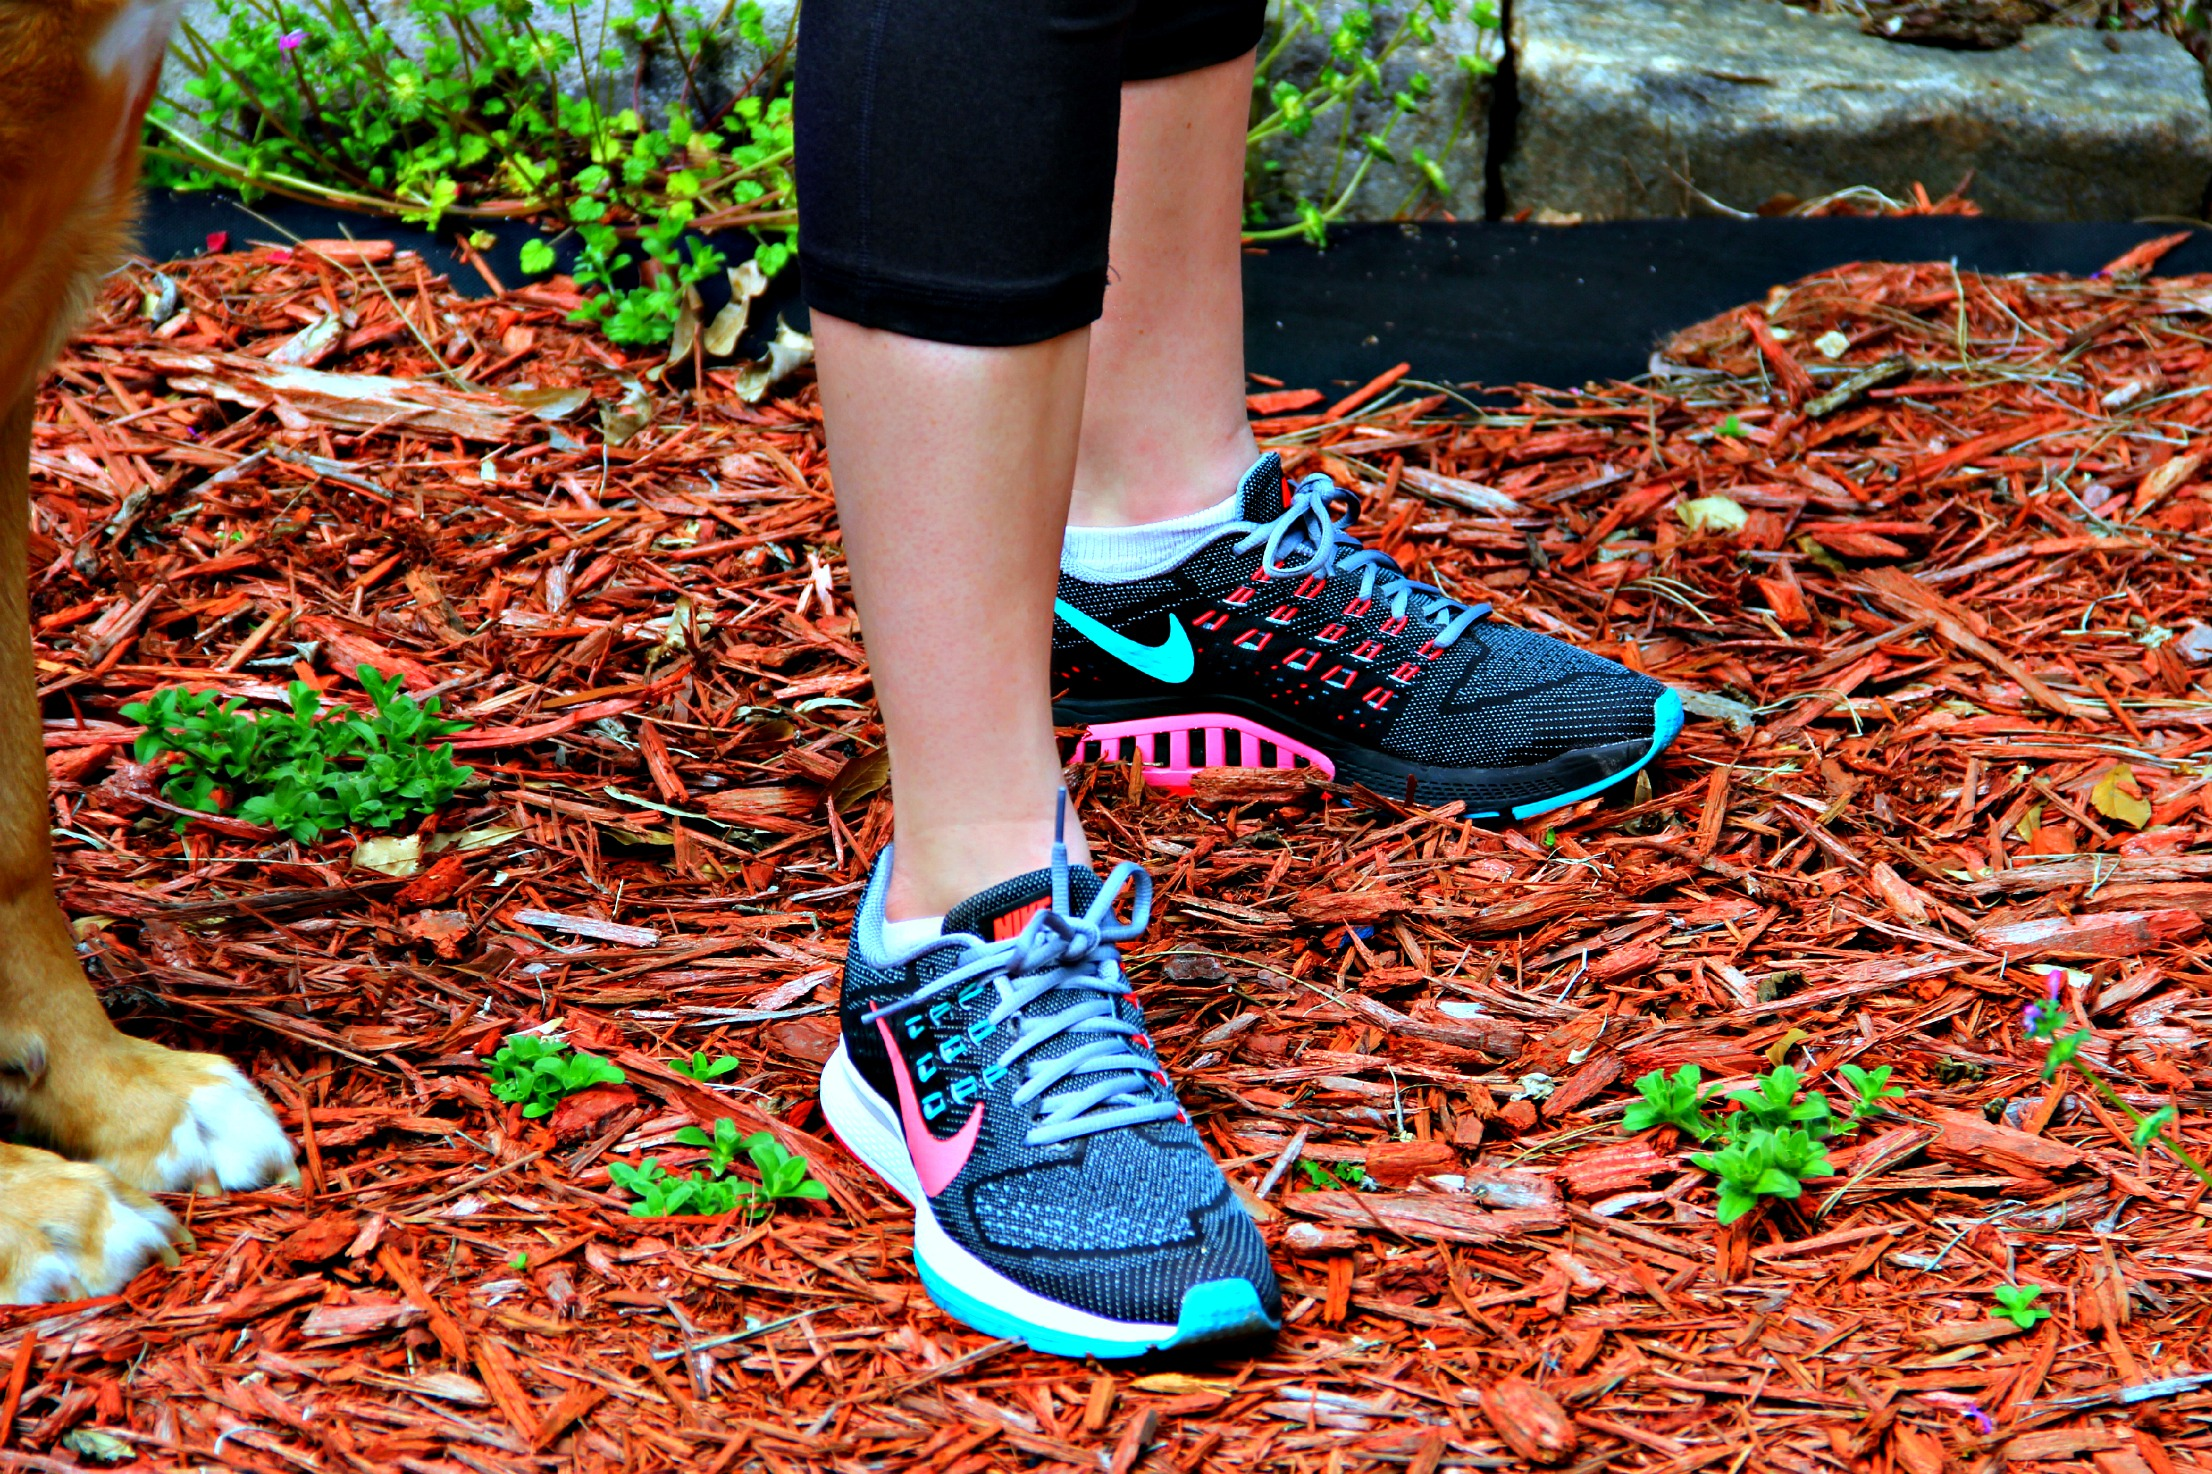 Durban Runner | Welcome Specialist in fitness gear. The Durban Runner is a specialist fitness sports store stocking all the latest running, triathlon and multisport equipment.